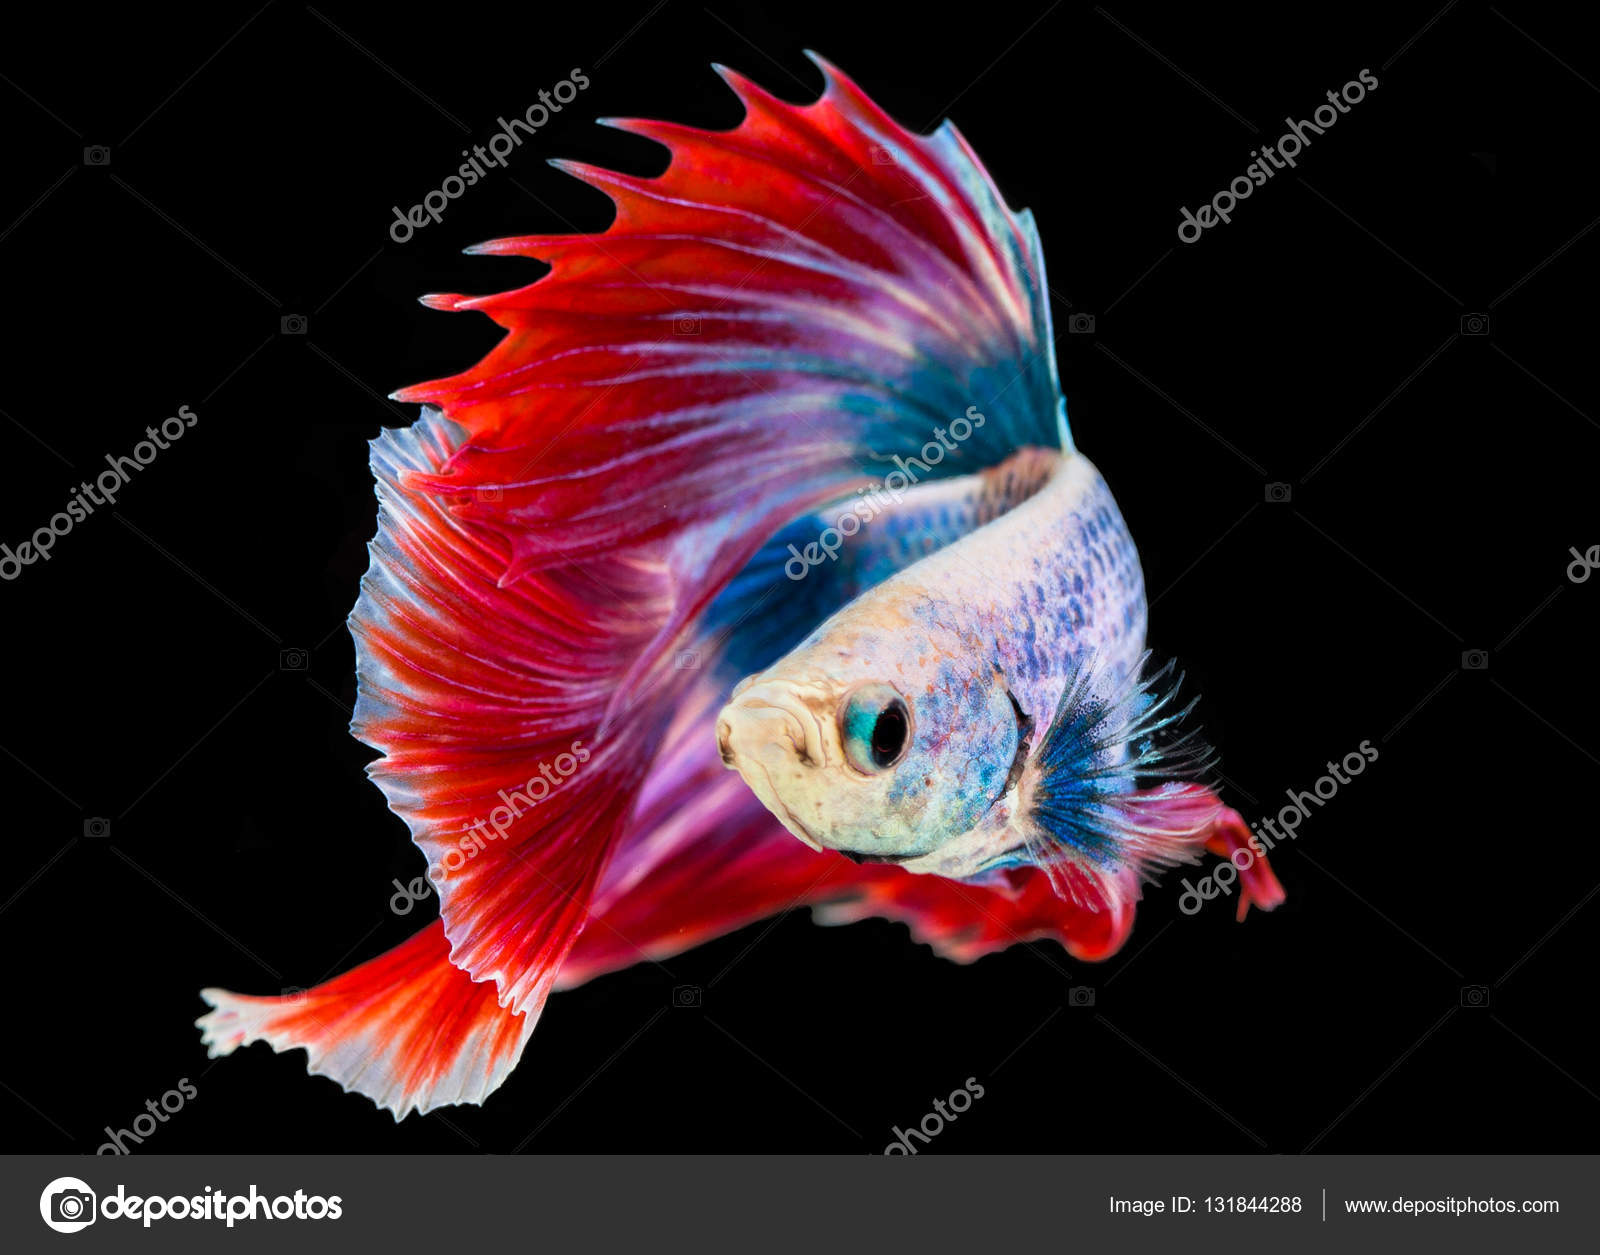 Siamese fighting fish — Stock Photo © thaisign #131844288